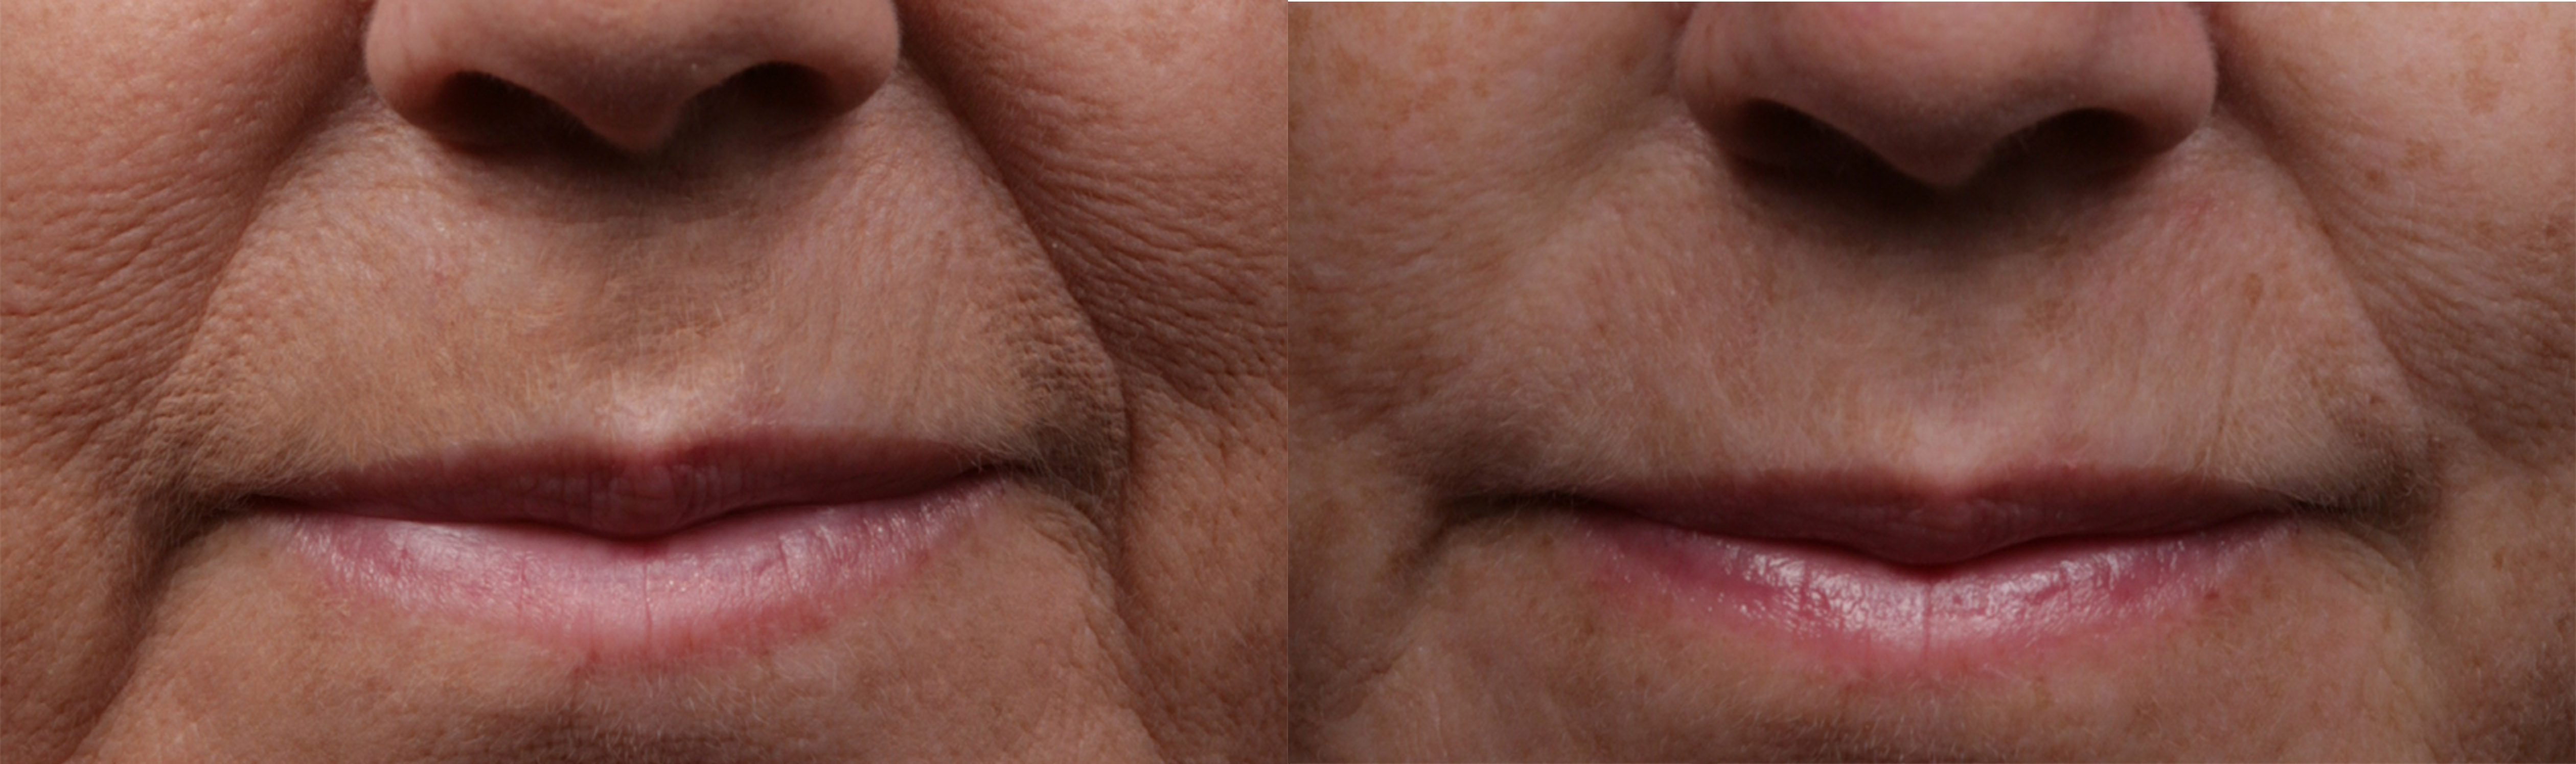 SklcSkin_Mouth_area_before_and_after